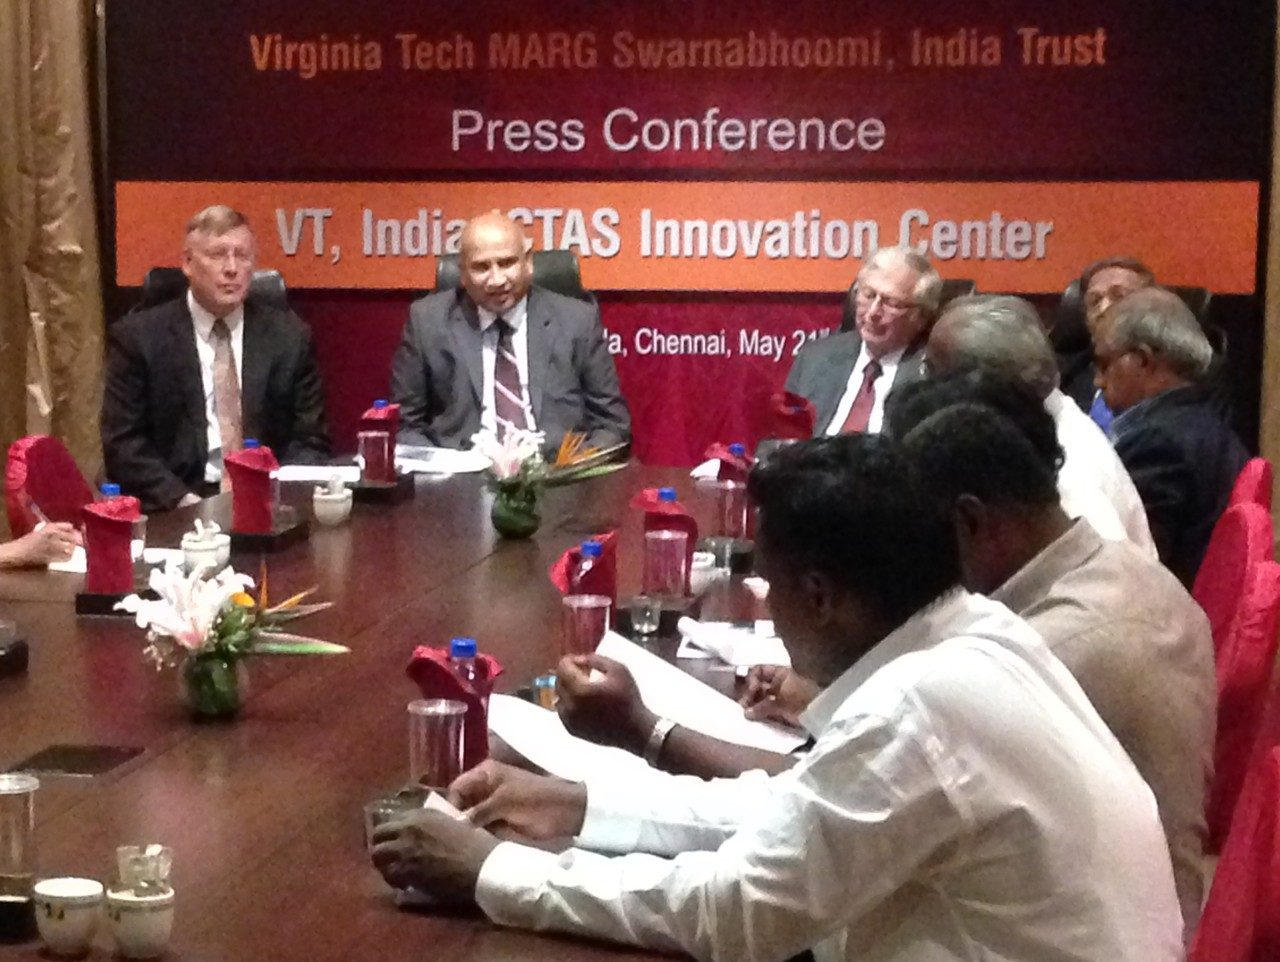 Reporters interview leadership from Virginia Tech and its Indian partner, MARG, at a news conference today in Chennai, India, announcing the opening of VT, India ICTAS Innovation Center.  Pictured at end of the table, left to right, are Richard Benson, dean of the College of Engineering at Virginia Tech; G.R.K. Reddy, MARG president; and Virginia Tech President Charles Steger.